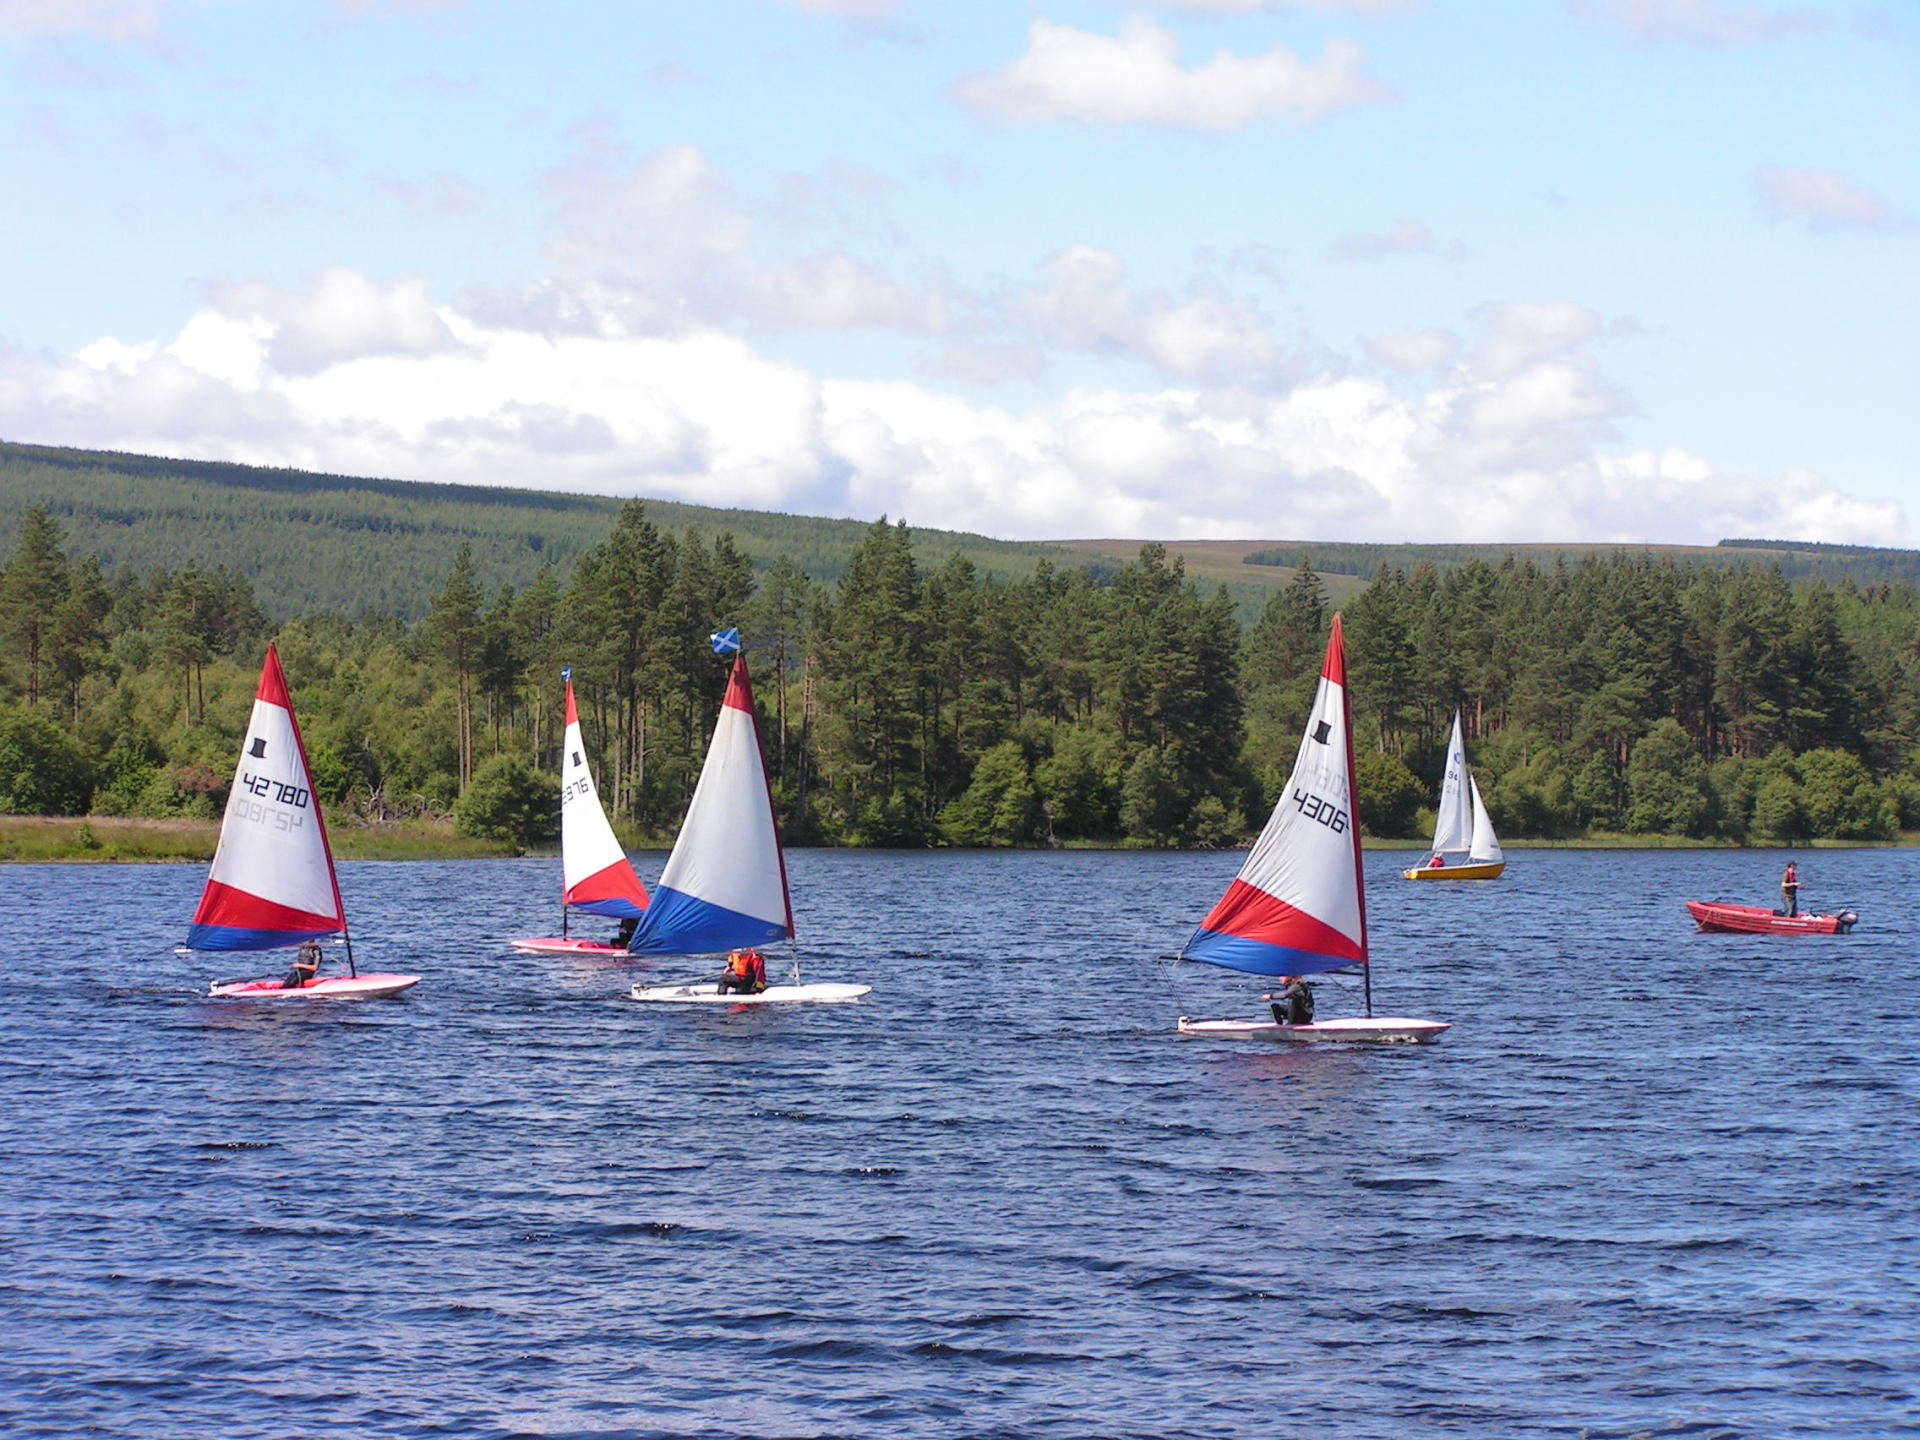 Sailing on Loch Shin